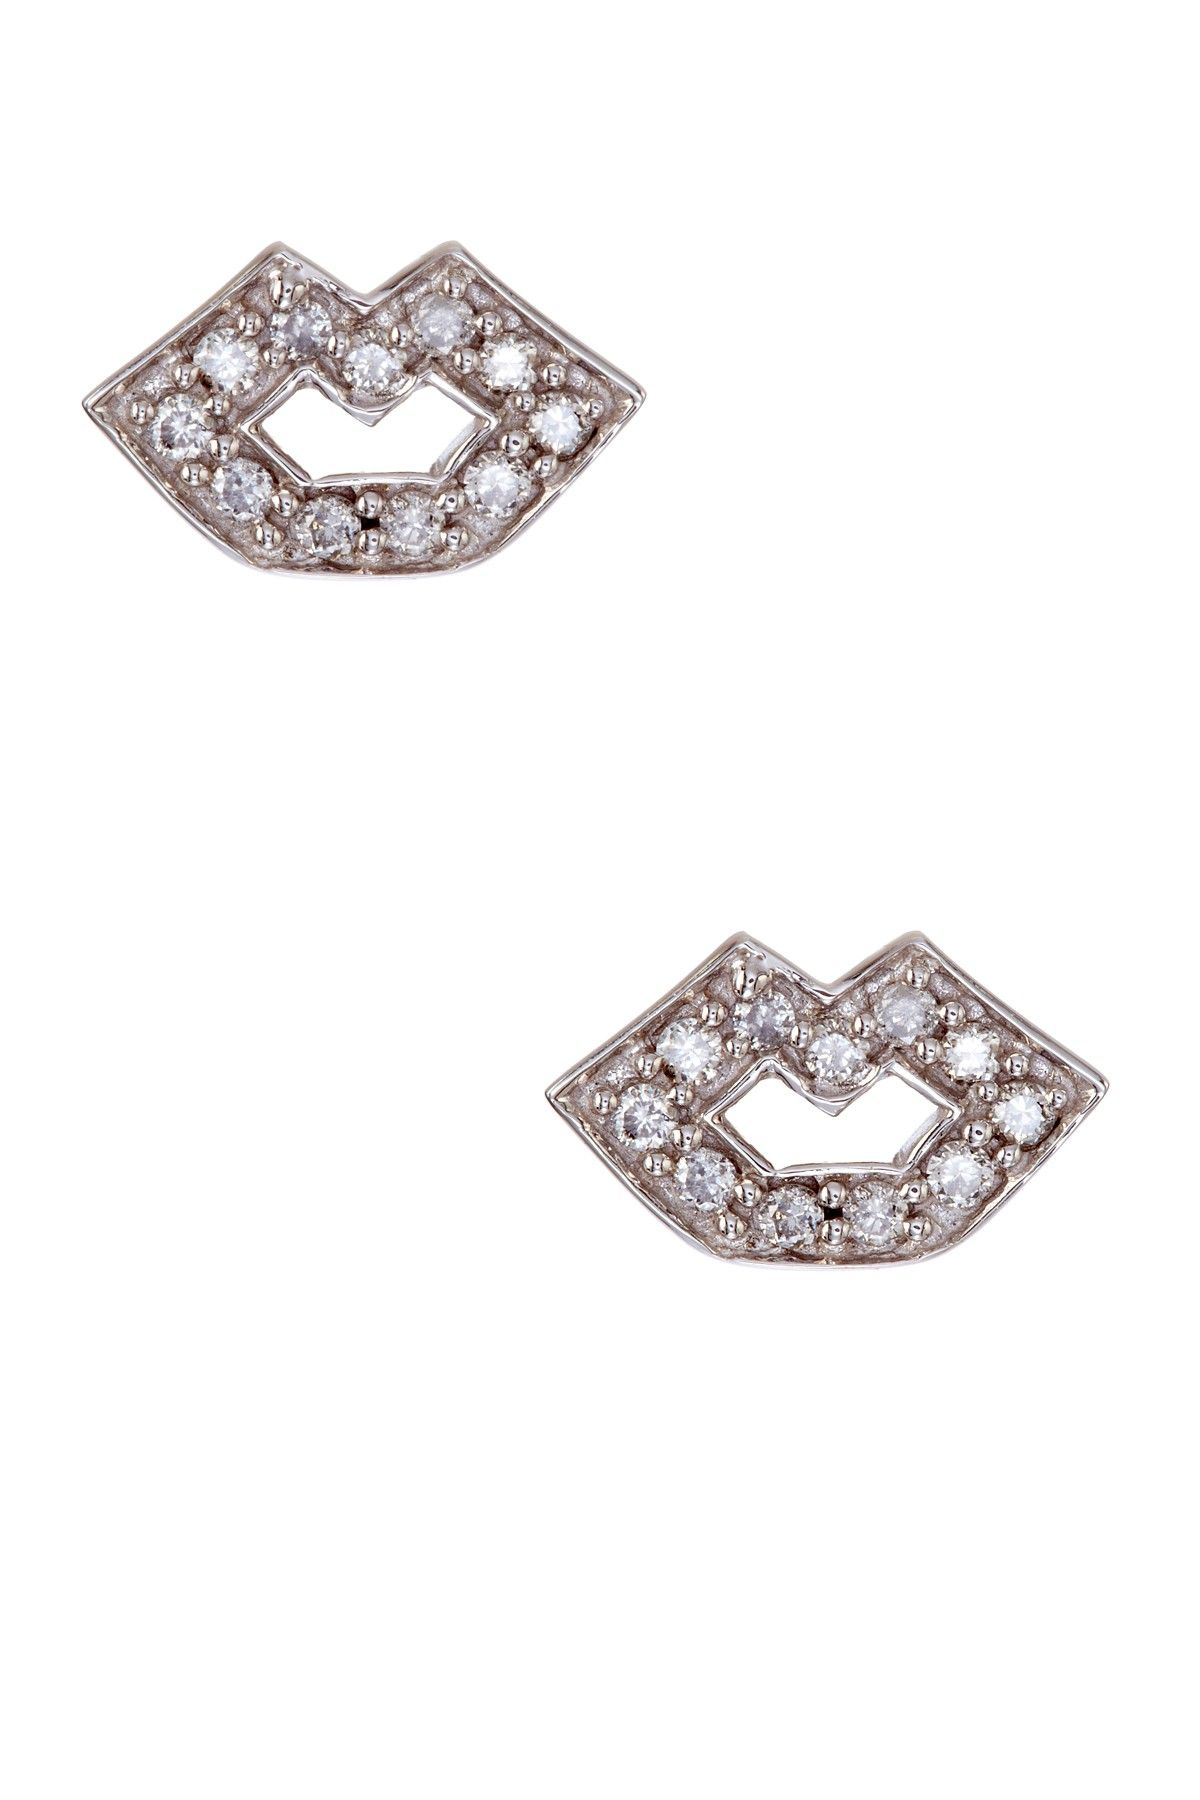 14k White Gold Diamond Lips Stud Earrings Joyas Pinterest